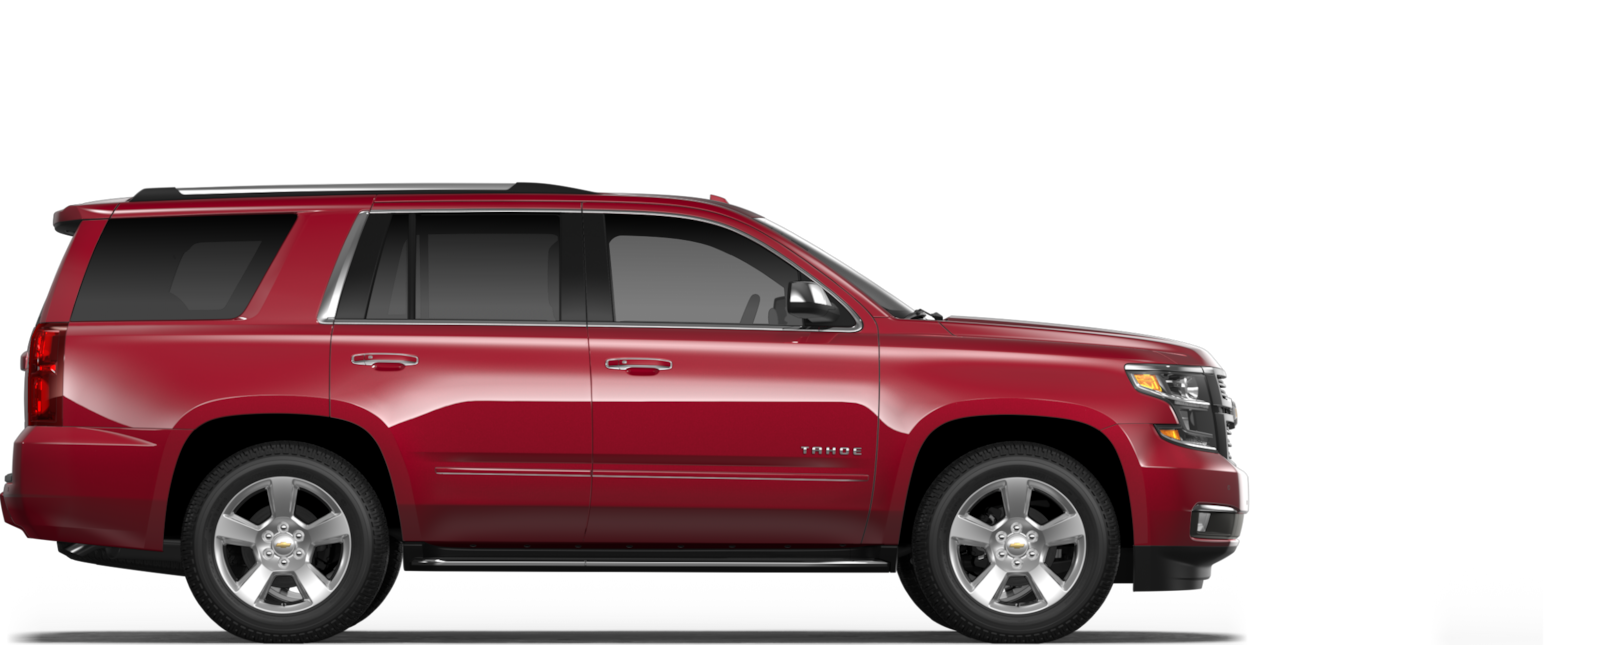 2018 tahoe: full-size suv - 7 seater suv   chevrolet